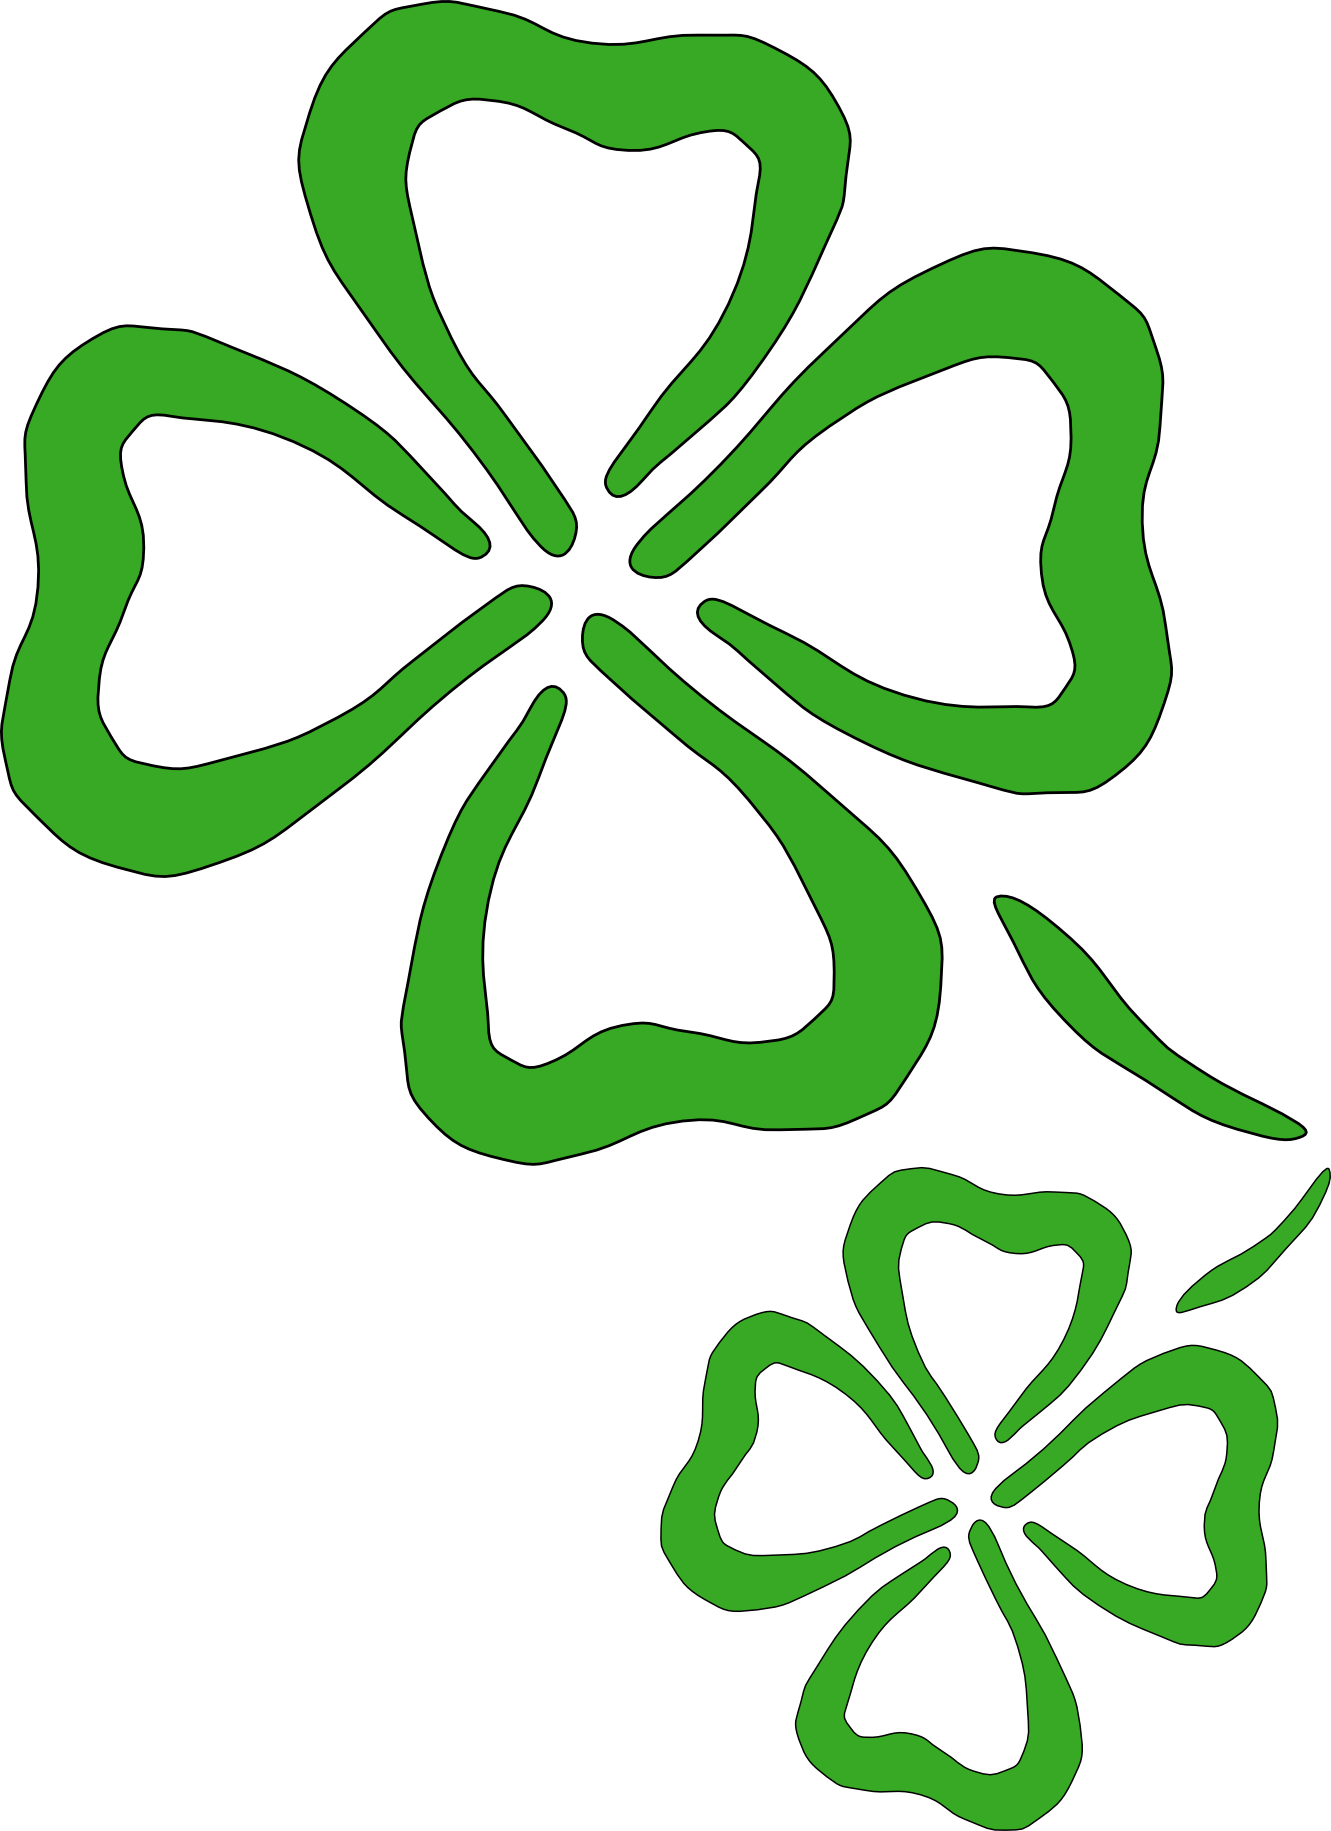 Clipart of a shamrock jpg black and white download Clipart Shamrock - ClipArt Best - ClipArt Best | Basement | Shamrock ... jpg black and white download